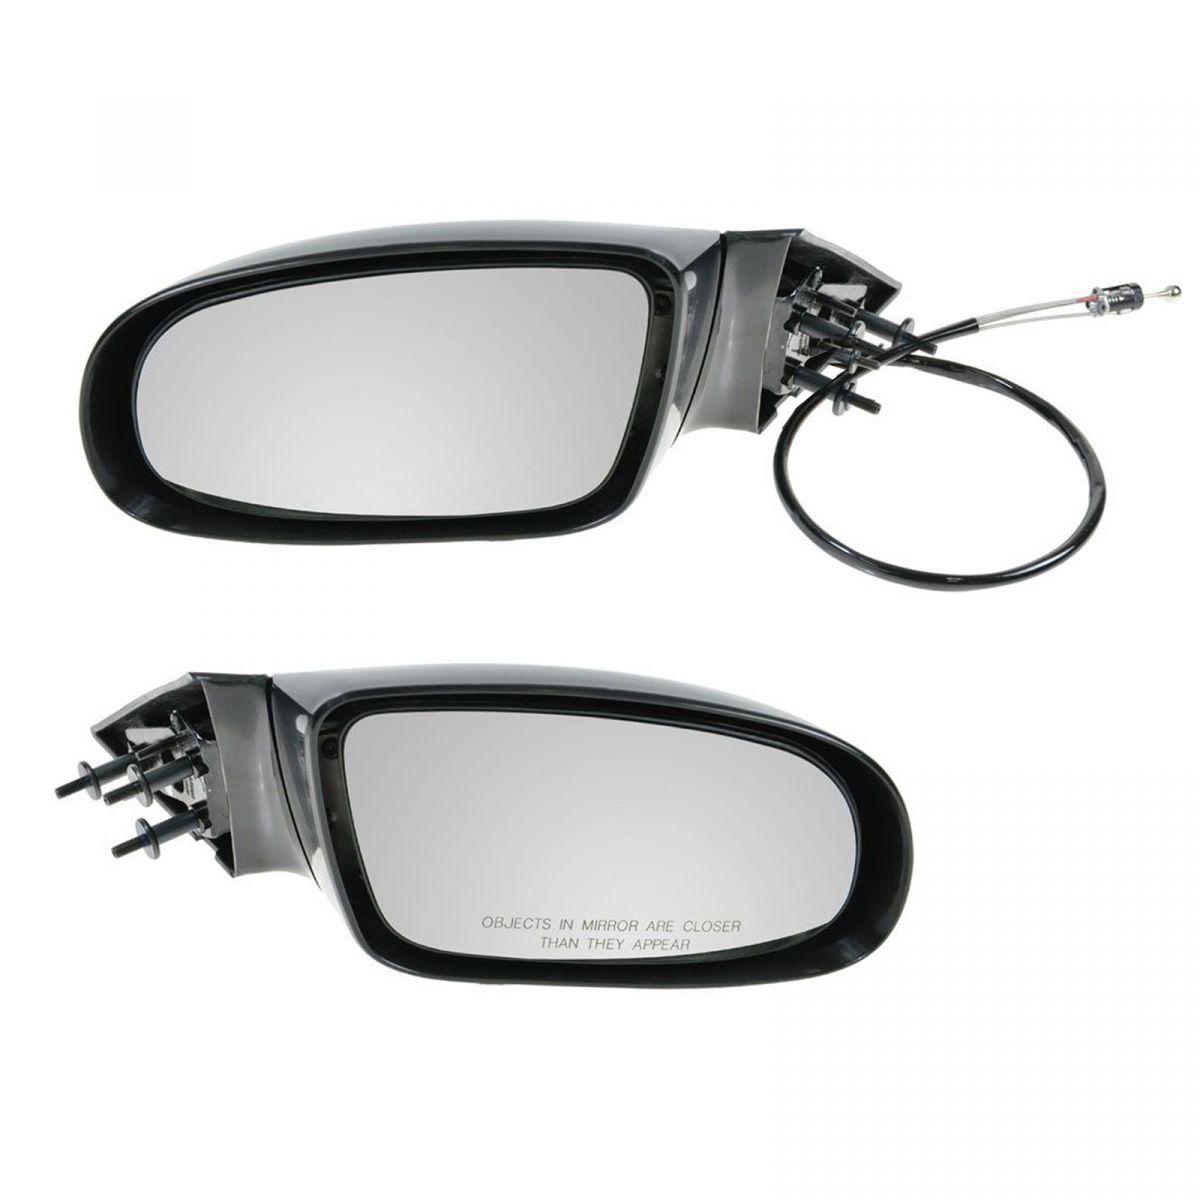 Manual Remote Door Mirror LH Left Driver Side for 95-96 Chevy Caprice Impala